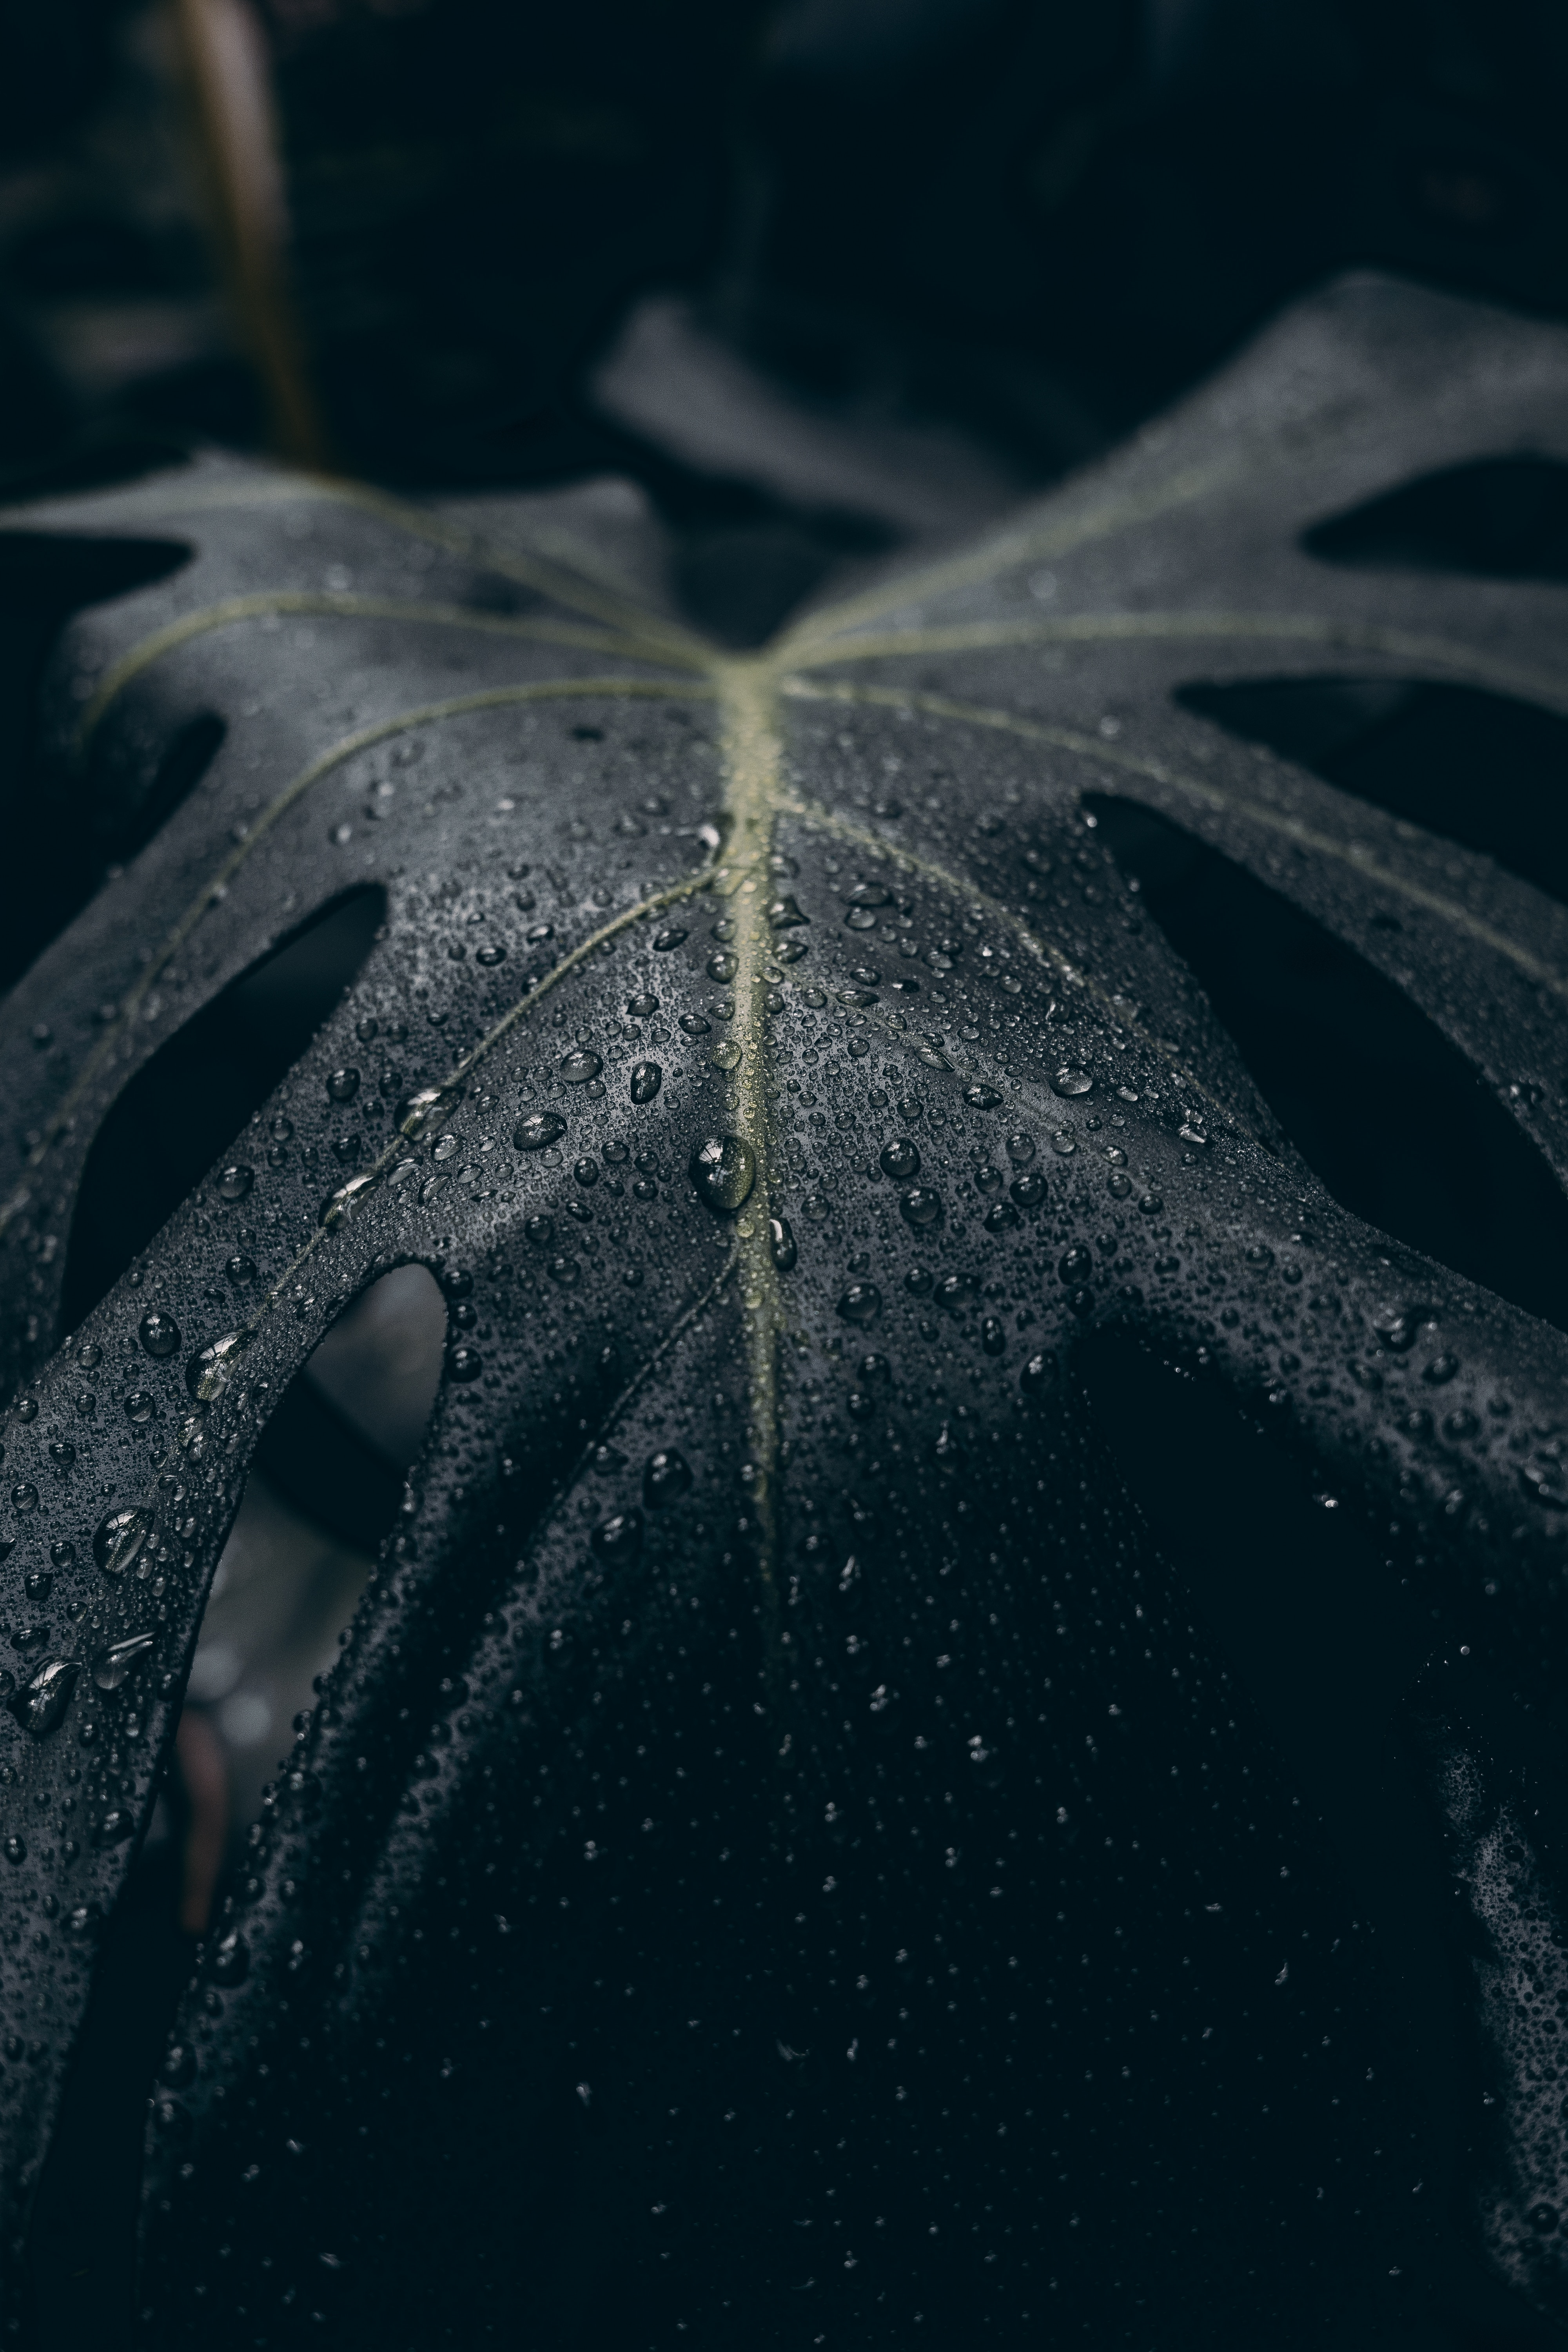 148280 download wallpaper Macro, Leaflet, Drops, Surface, Dark screensavers and pictures for free